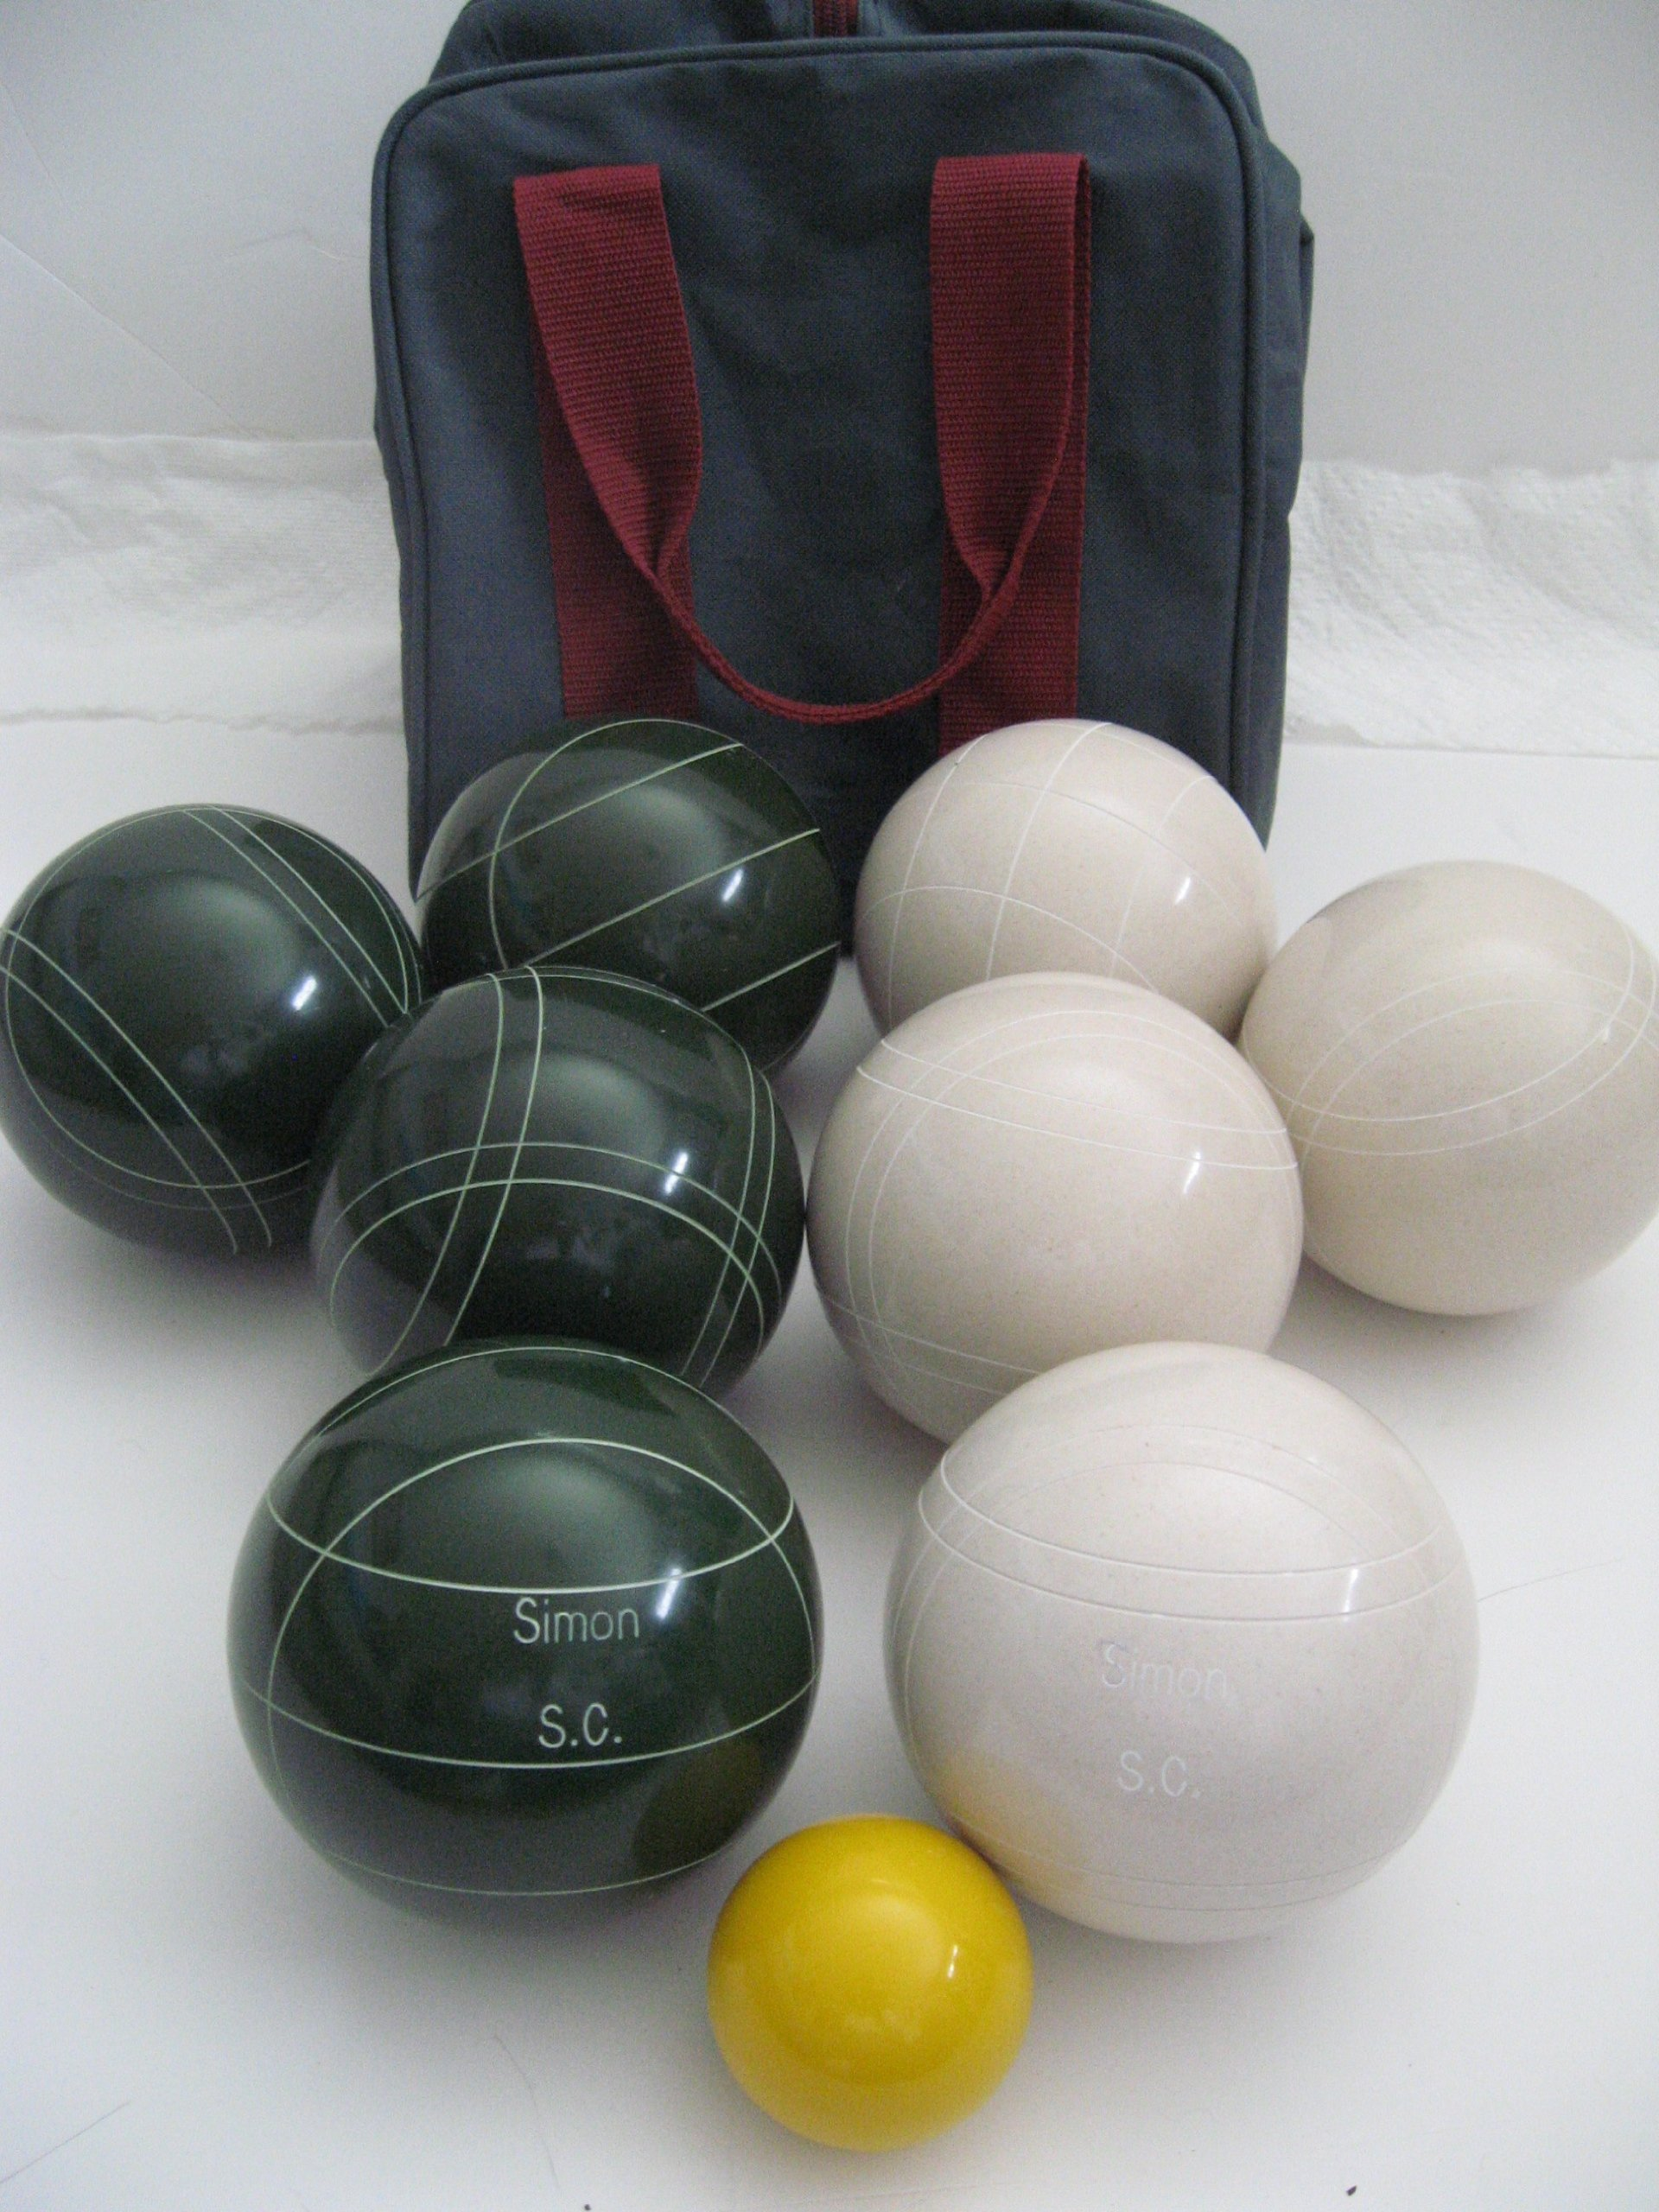 Premium Quality Engraved Bocce Package - 110mm Epco White and Green Balls with Engraving [Misc.] by Epco